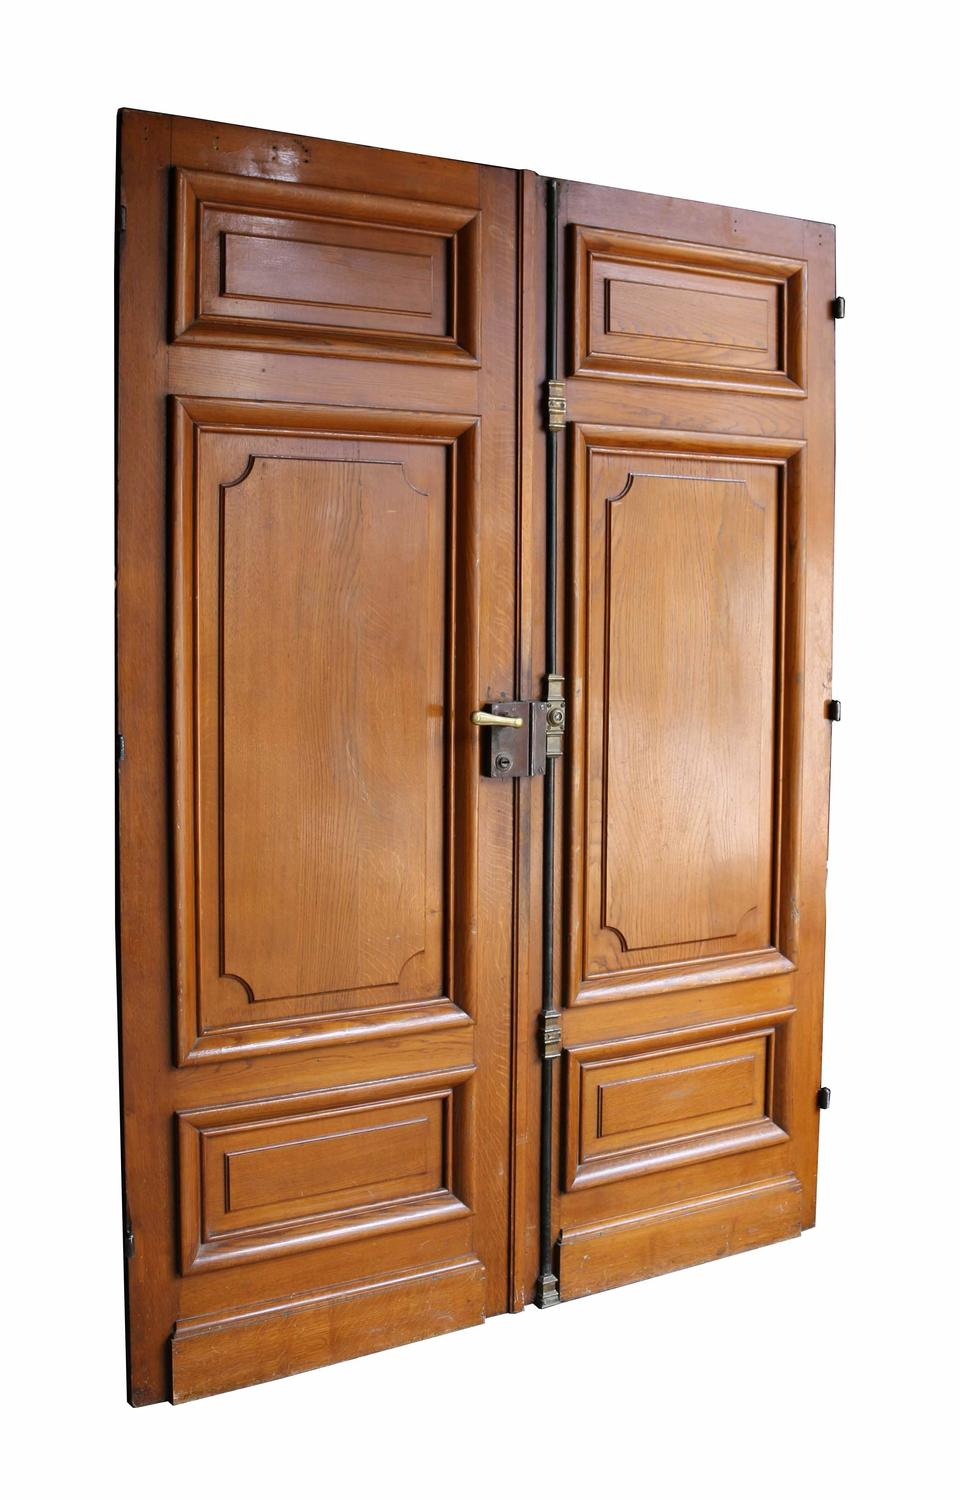 Pair of french oak double doors for sale at 1stdibs for Double french doors for sale